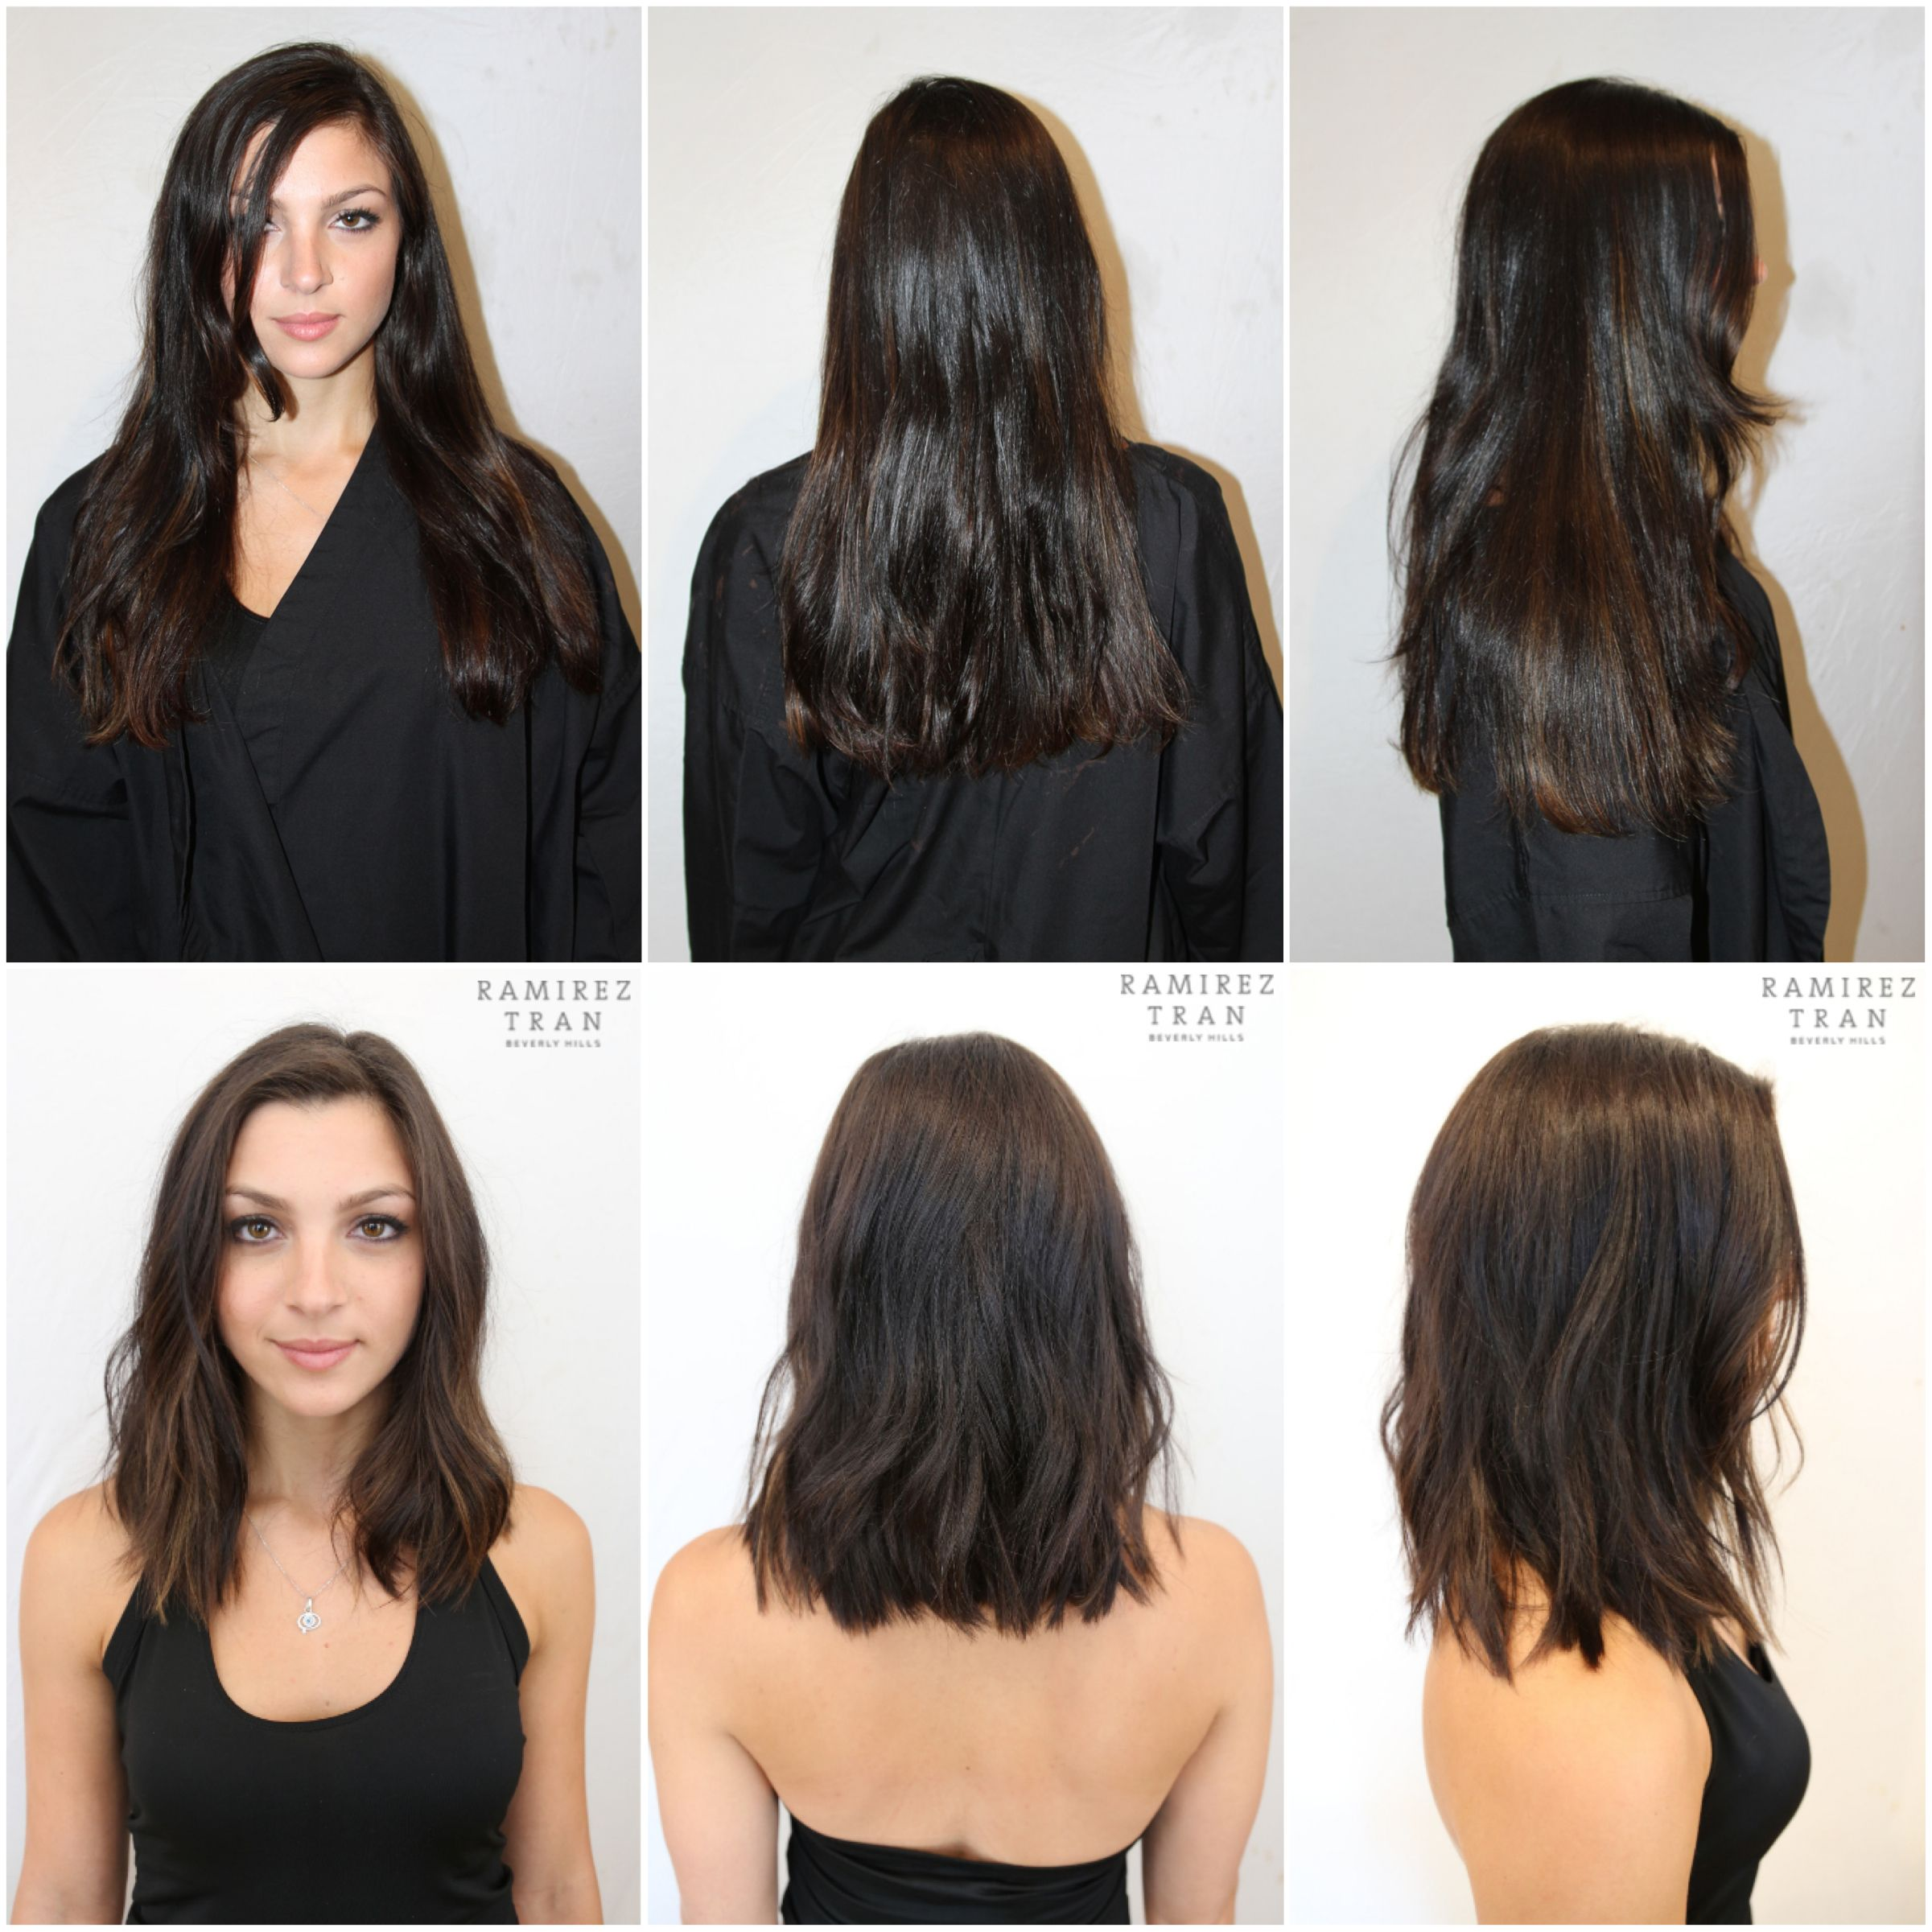 Hair Before and After | Lob | Hair Styles | Pinterest | Bobs